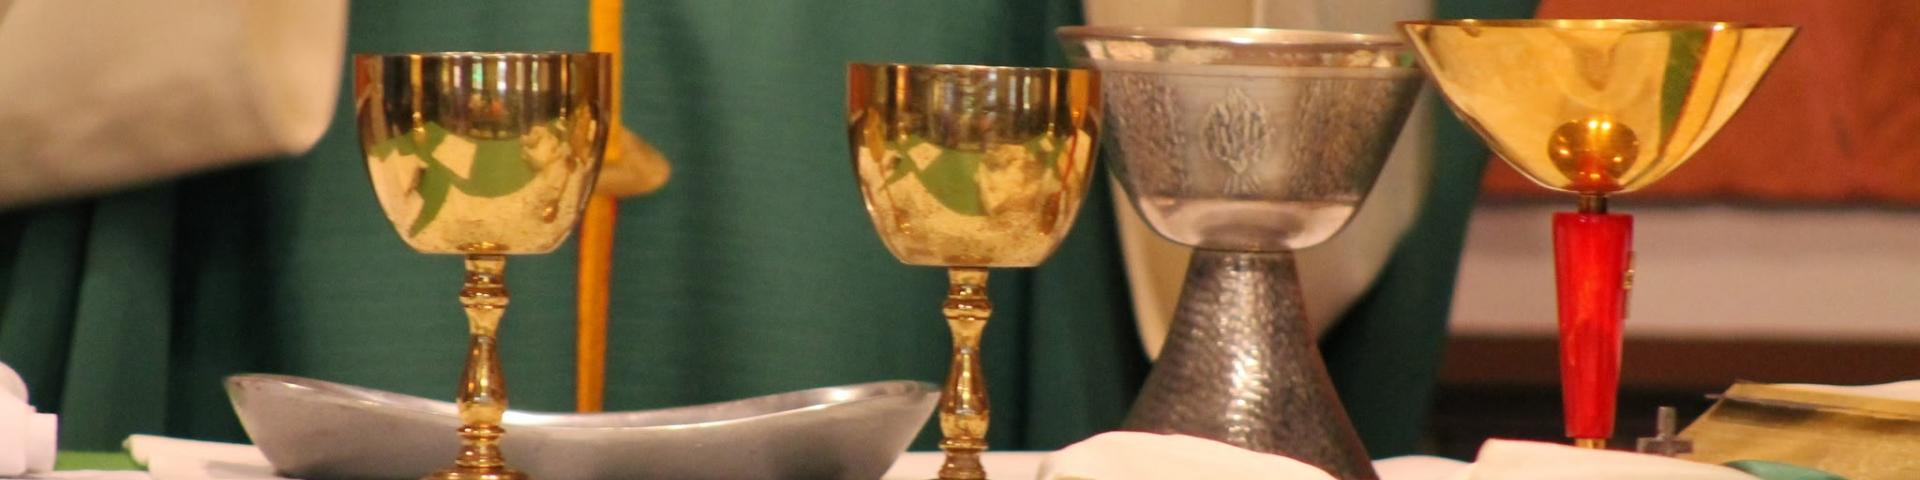 Picture of chalices during consecration